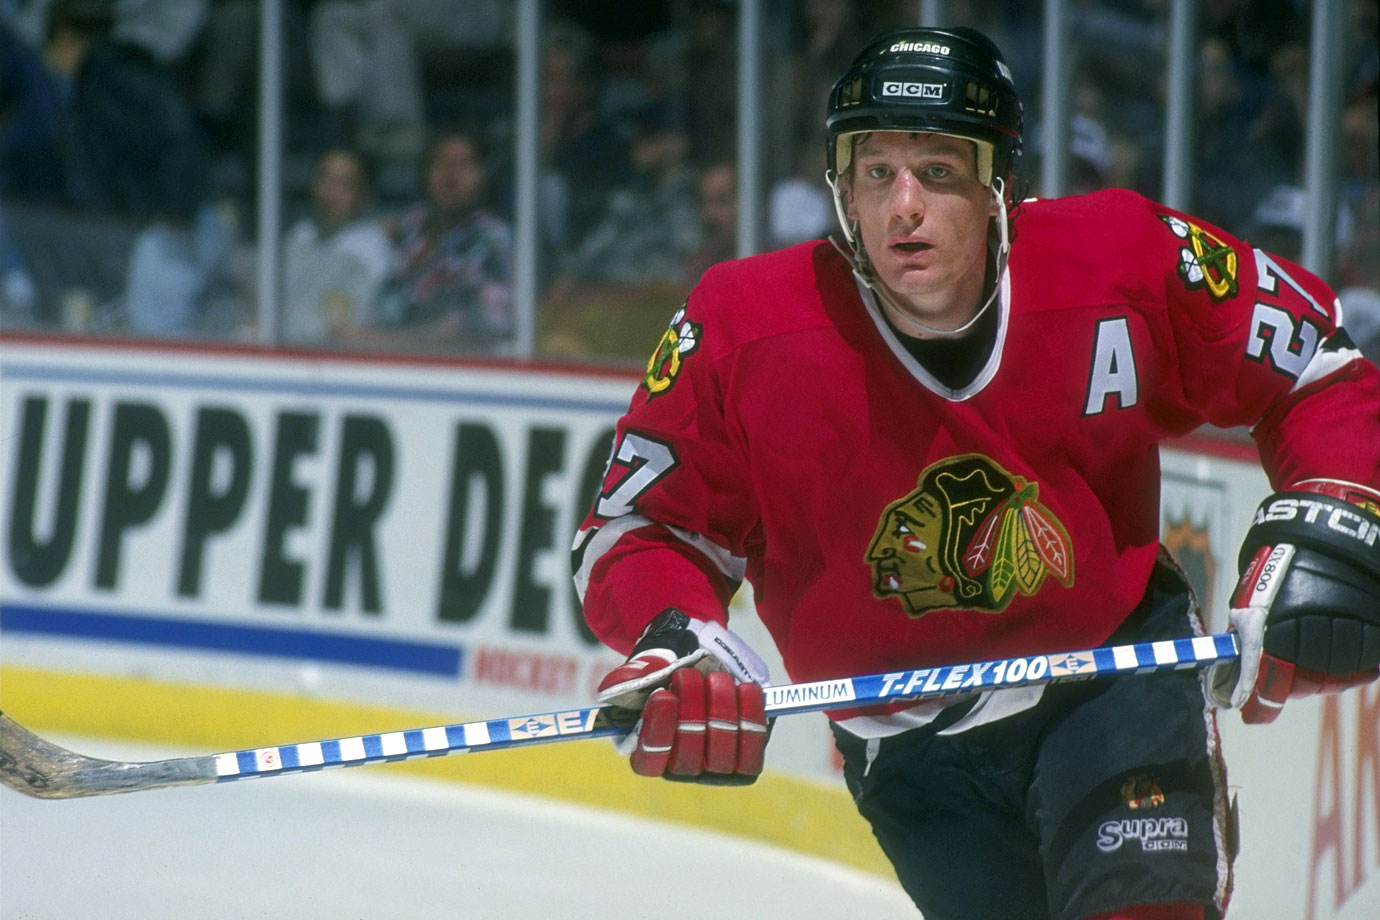 The flashy, outspoken center was drafted by the Blackhawks in the first round (eighth overall) in 1988 and he became one of the leaders of a revival that saw Chicago return to the Stanley Cup Final in 1992 for the first time in 19 years. He scored more than 100 points for Chicago in three straight seasons (1991-94) and posted two 50-plus-goal campaigns. After a series of injuries took their toll, he was dealt to the Phoenix Coyotes in 1996.